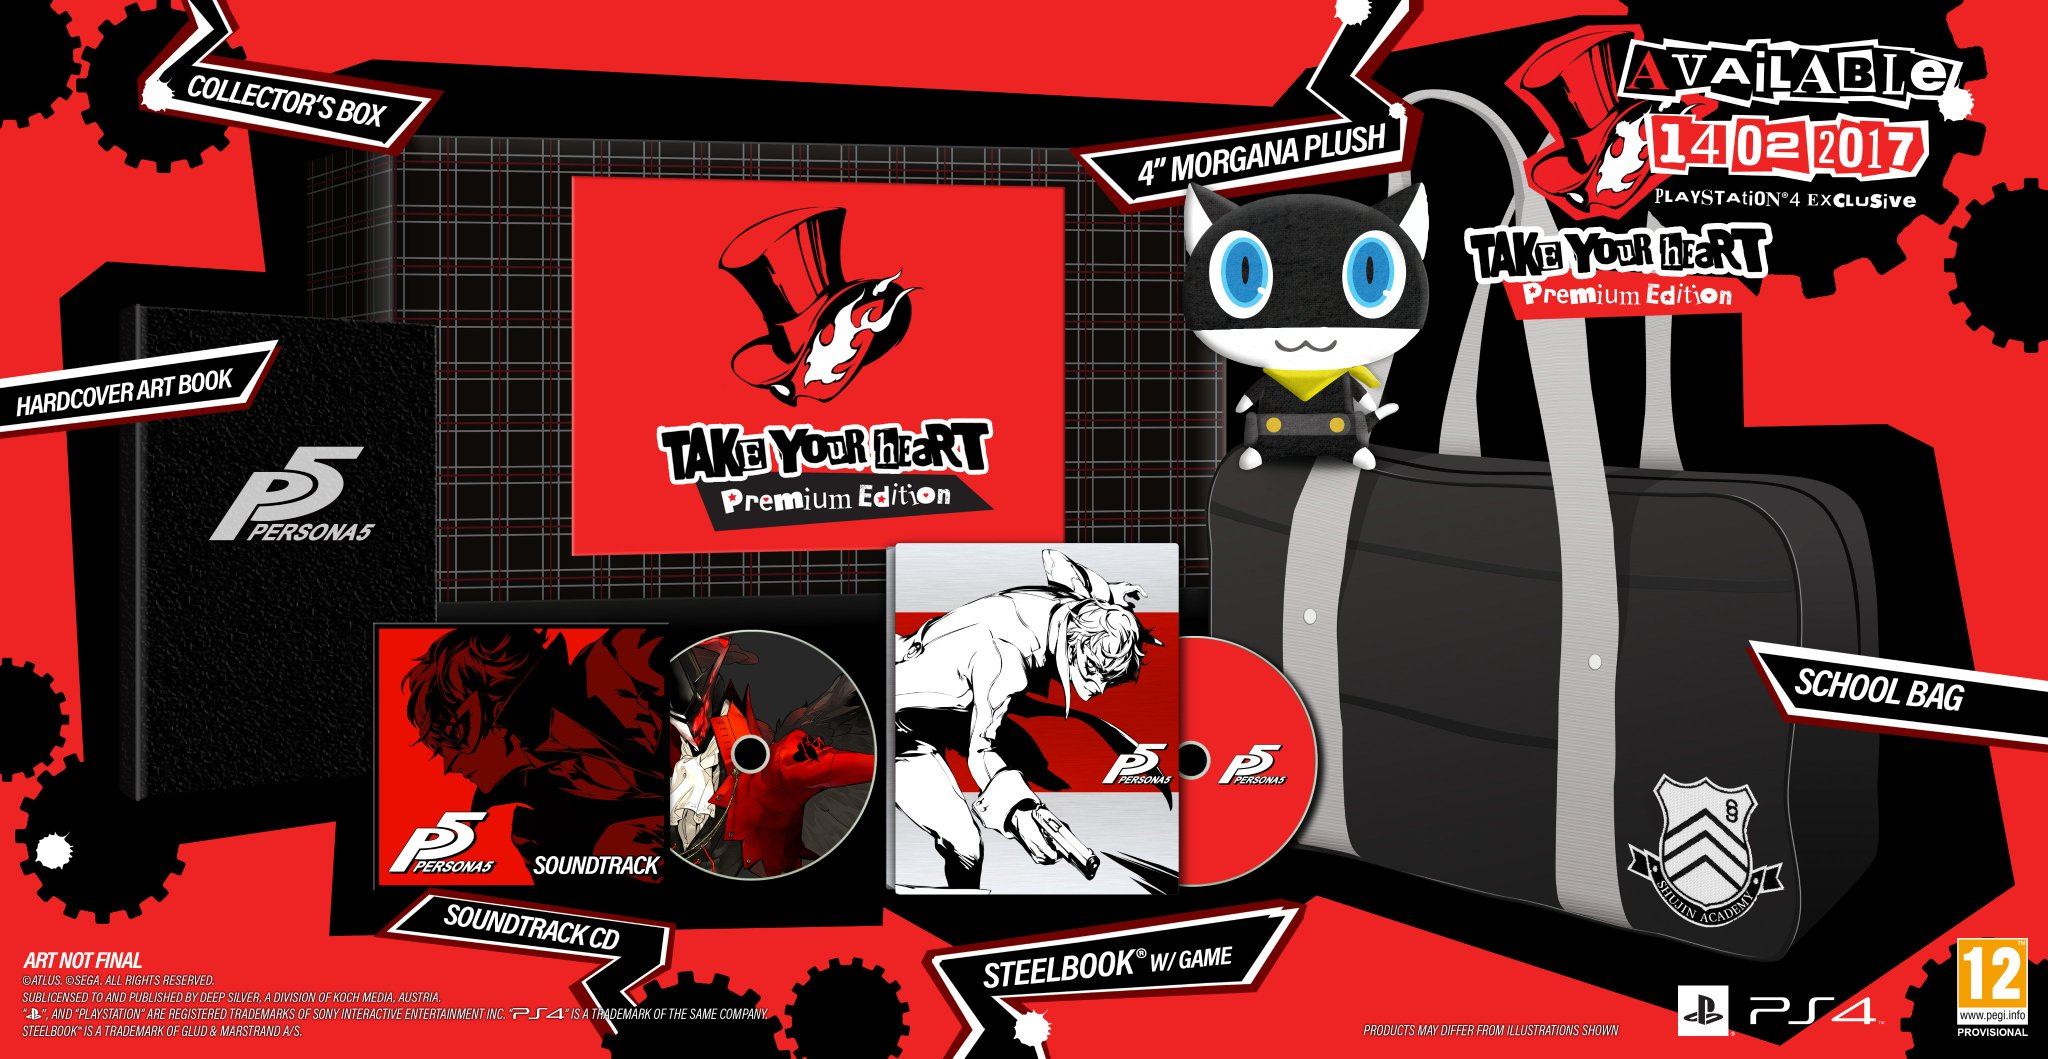 Official Deep Silver On Twitter Persona 5 Will Release In Europe Game Ps4 Region 3 English Pal Countries February 14 2017 Steelbook And Premium Editions Check